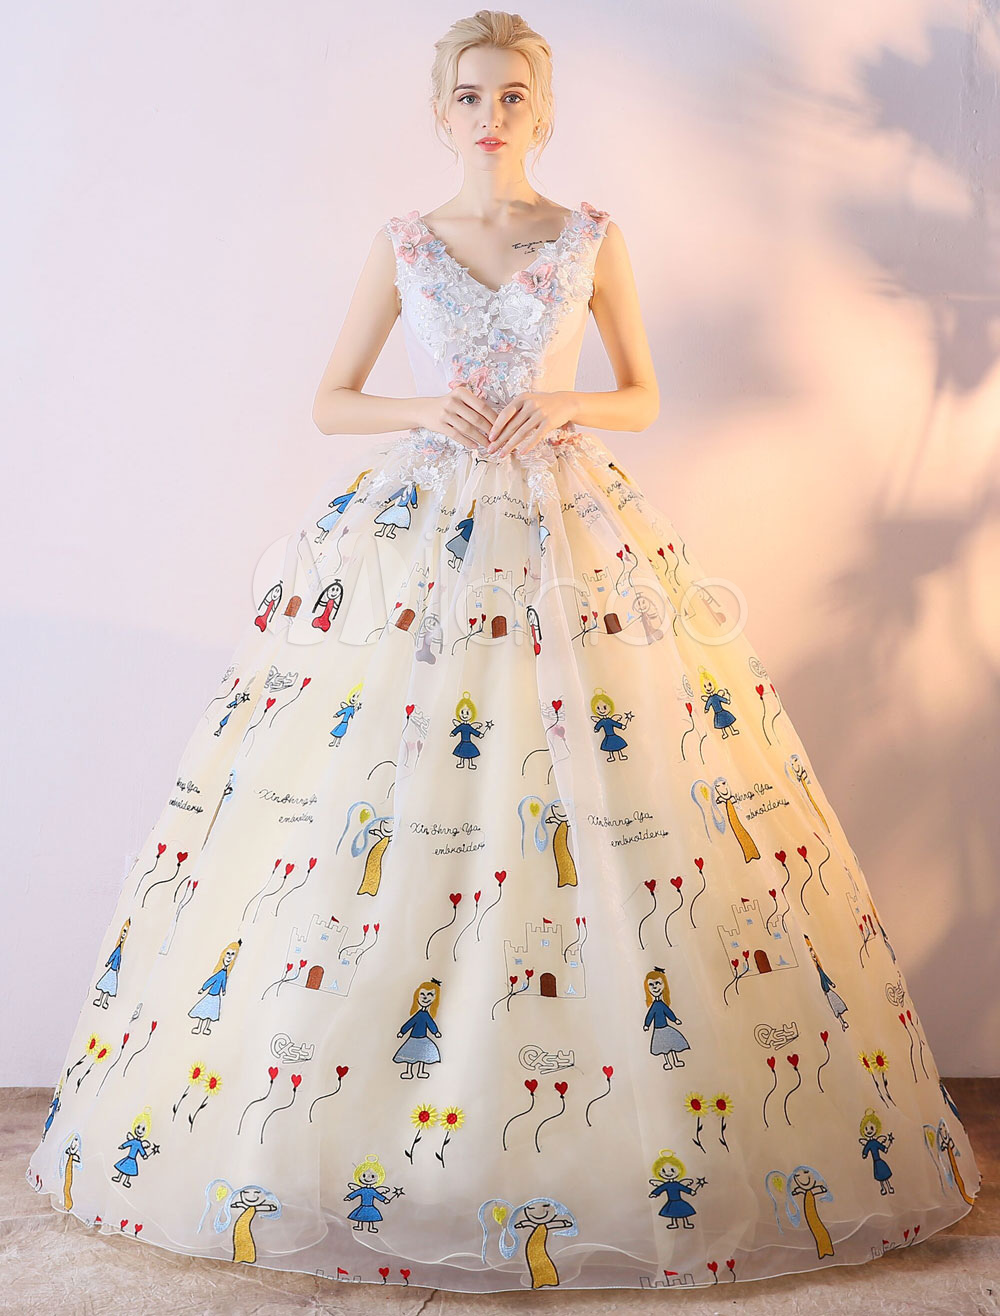 Prom Gown V Neck Princess Quinceanera Dresses Ball Gown Printed Women Vanilla Cream Pageant Dress